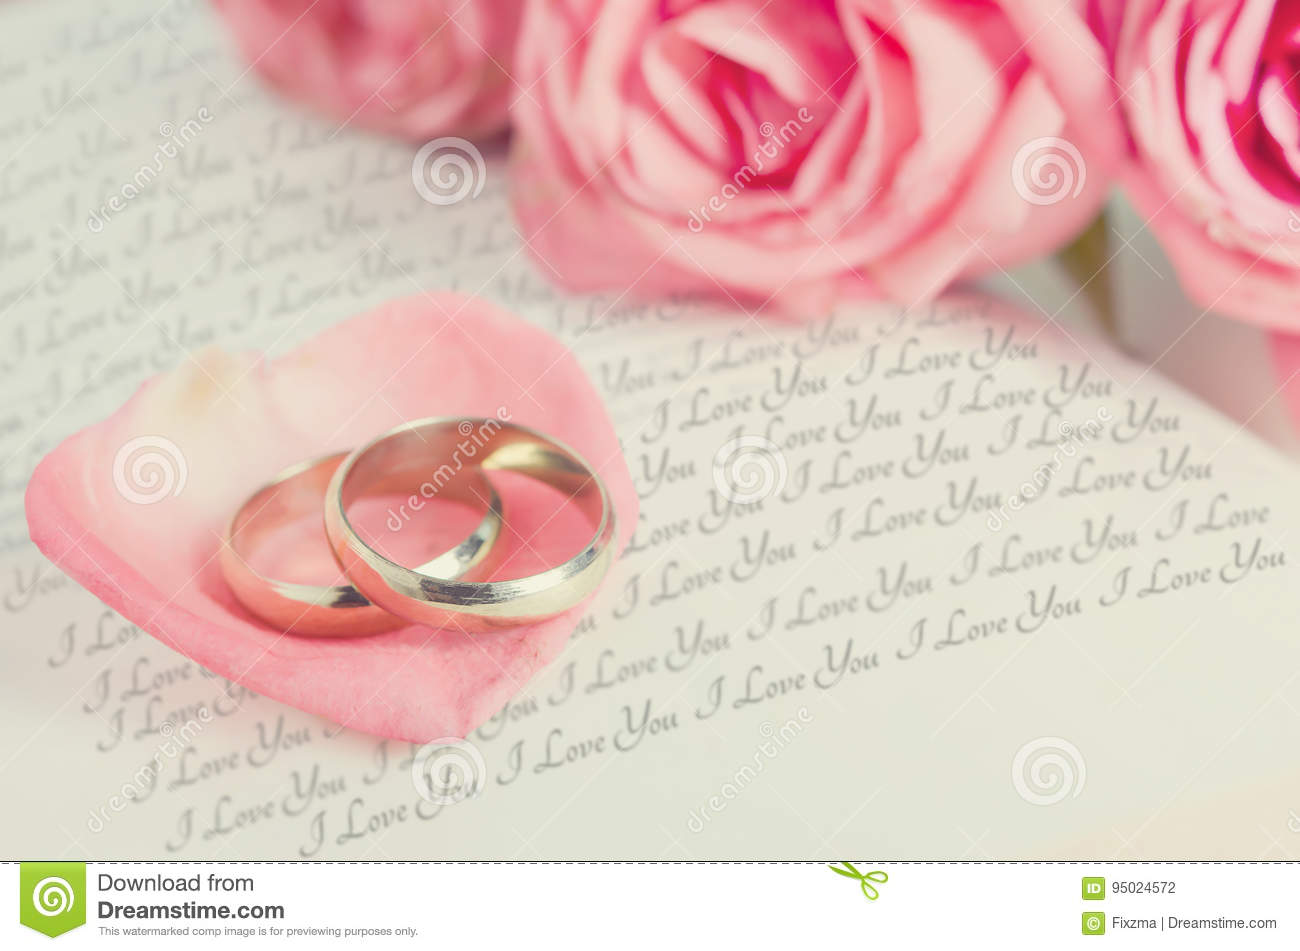 Golden Rings On Pink Rose Petal On Opened Book Stock Photo - Image ...